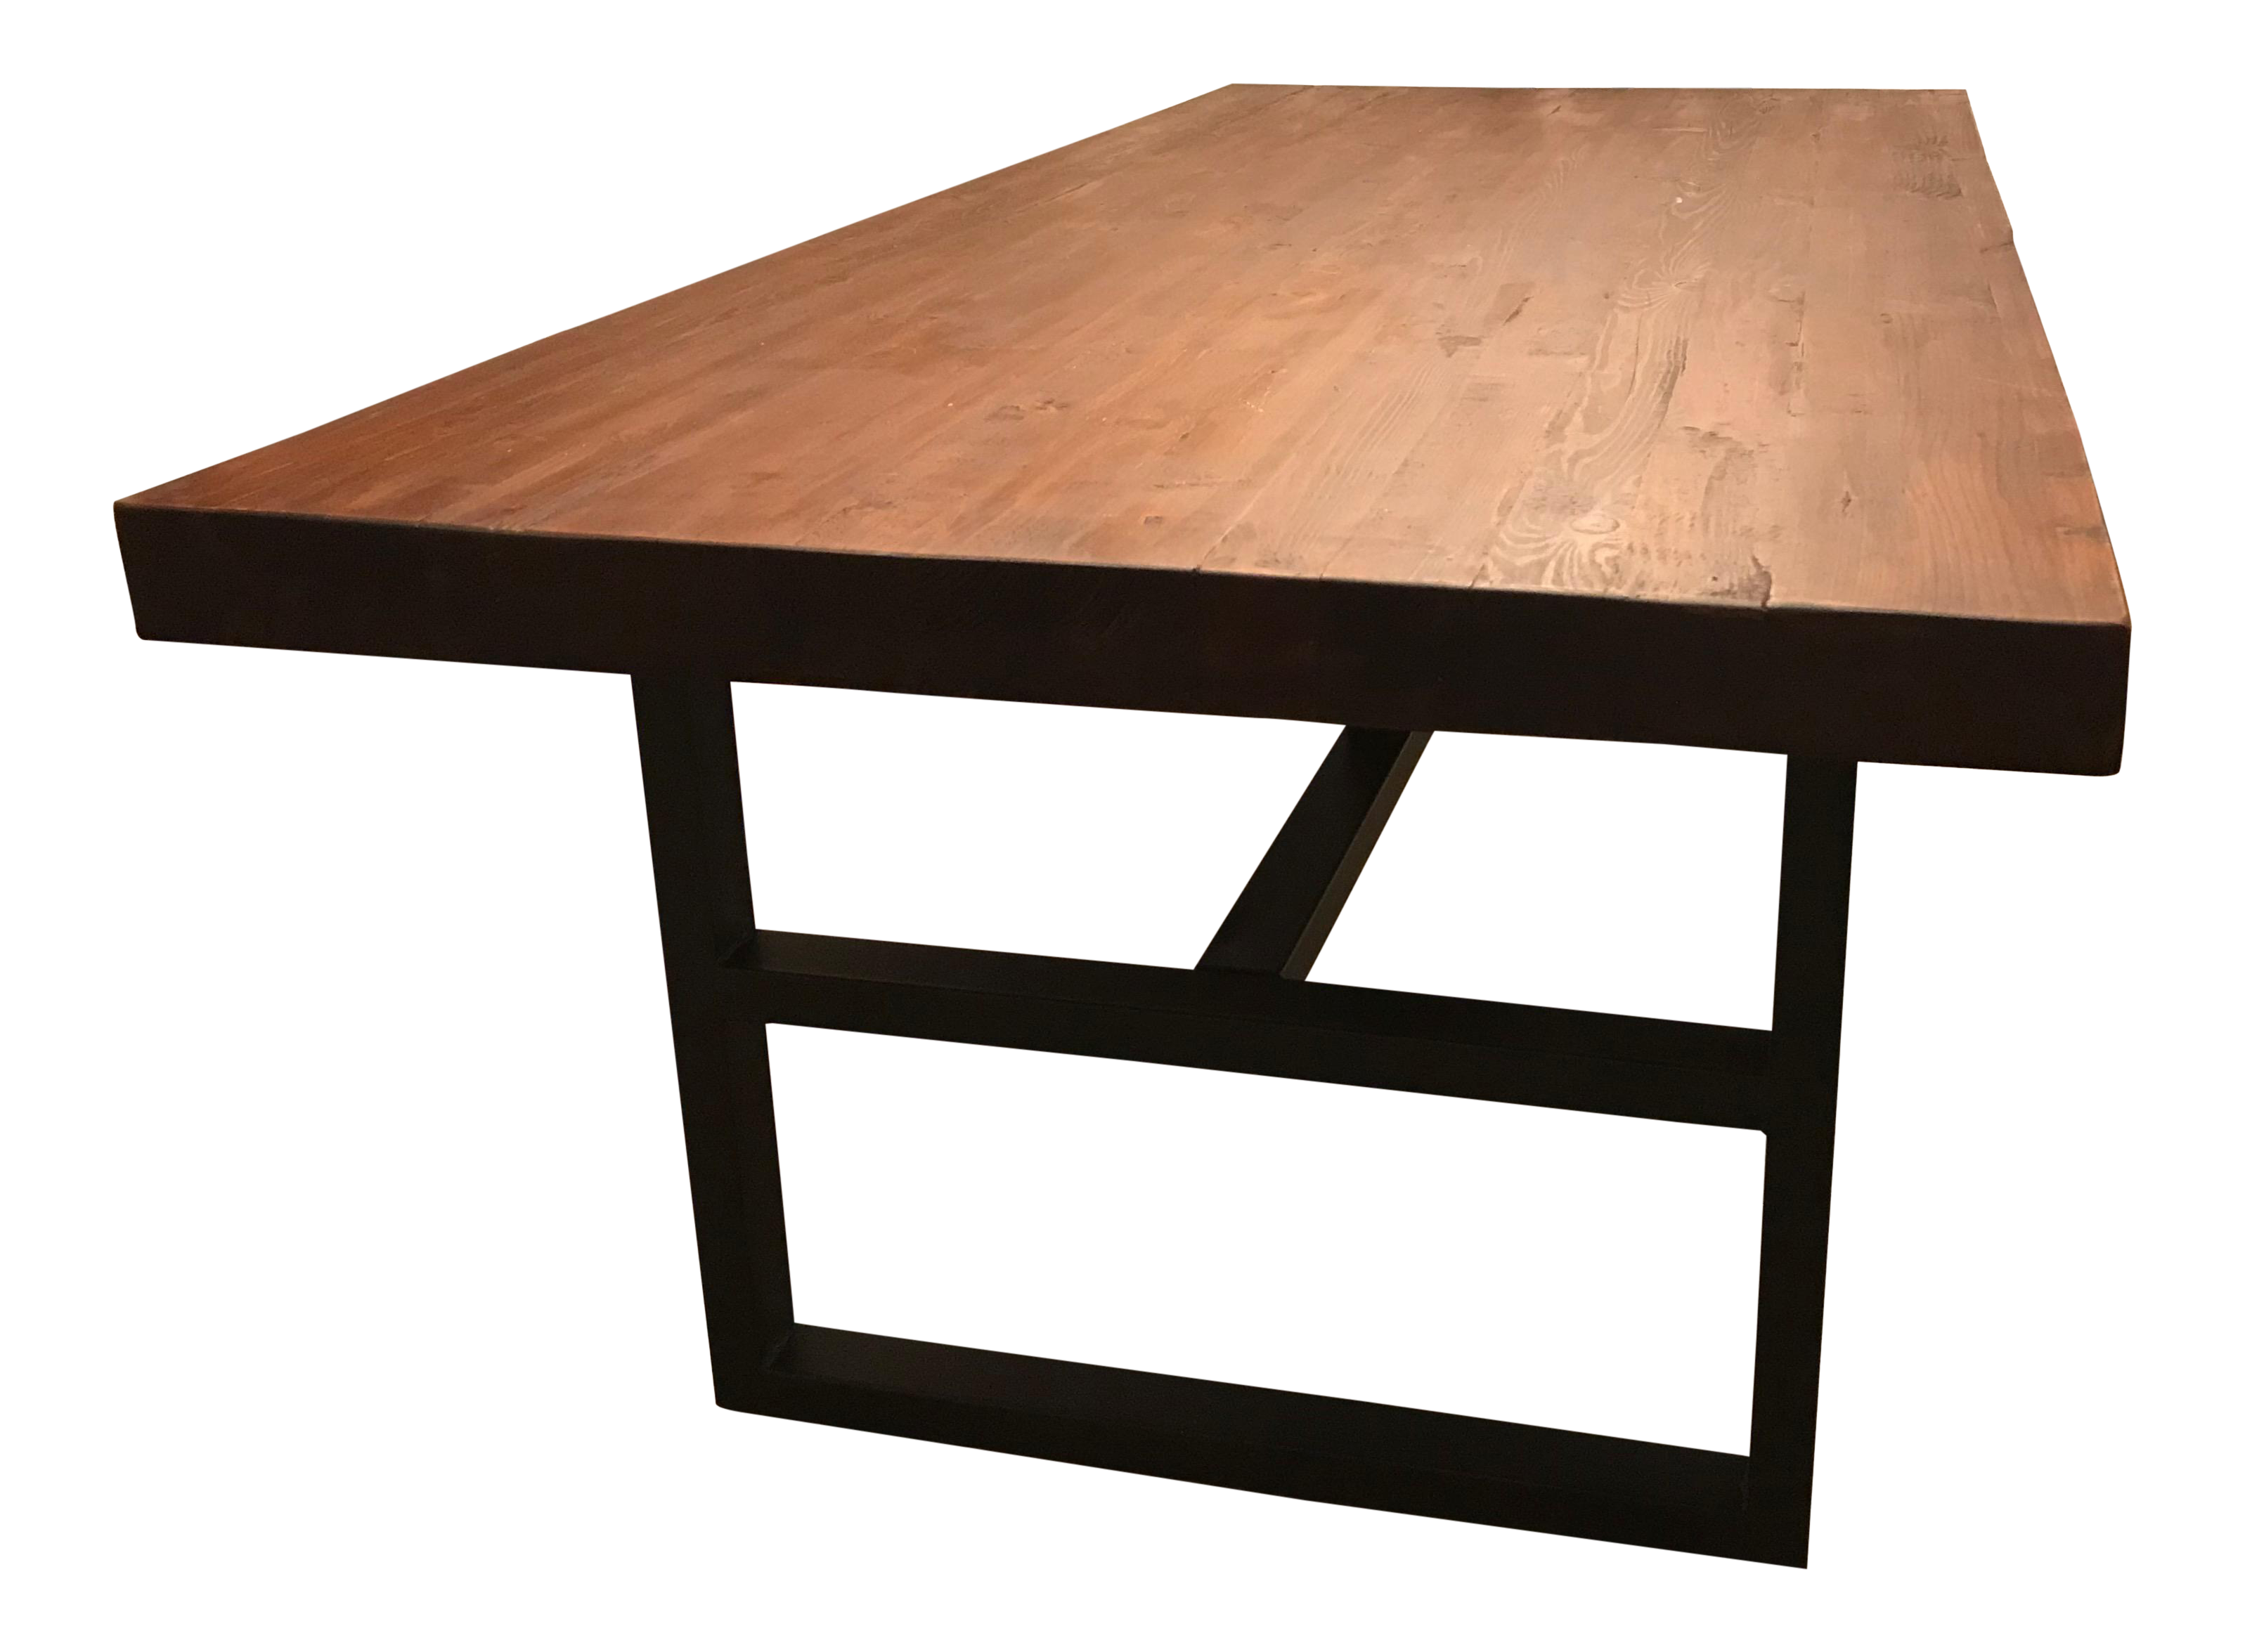 Abbott Zinc Top Dining Table Images Zinc Table Tops  : pottery barn griffin dining room table 2127 from favefaves.com size 3194 x 2351 png 4812kB